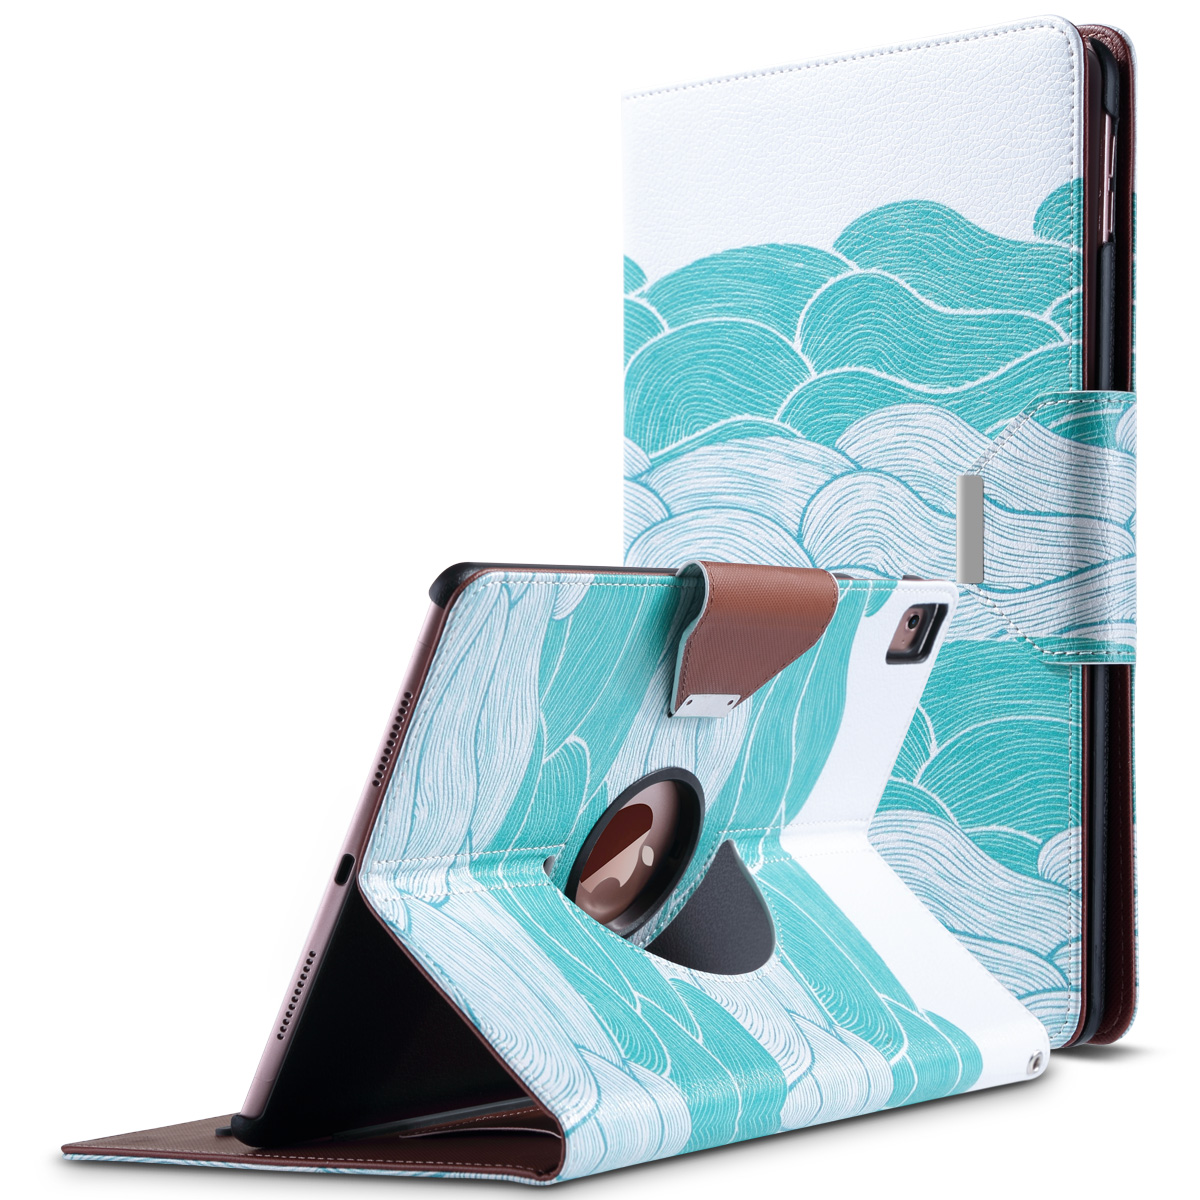 ULAK iPad Pro 9.7 2016 Case, 360 Degree Rotating Stand Cover with Auto Sleep / Wake Feature for Apple iPad Pro 9.7 Inch 2016 Release